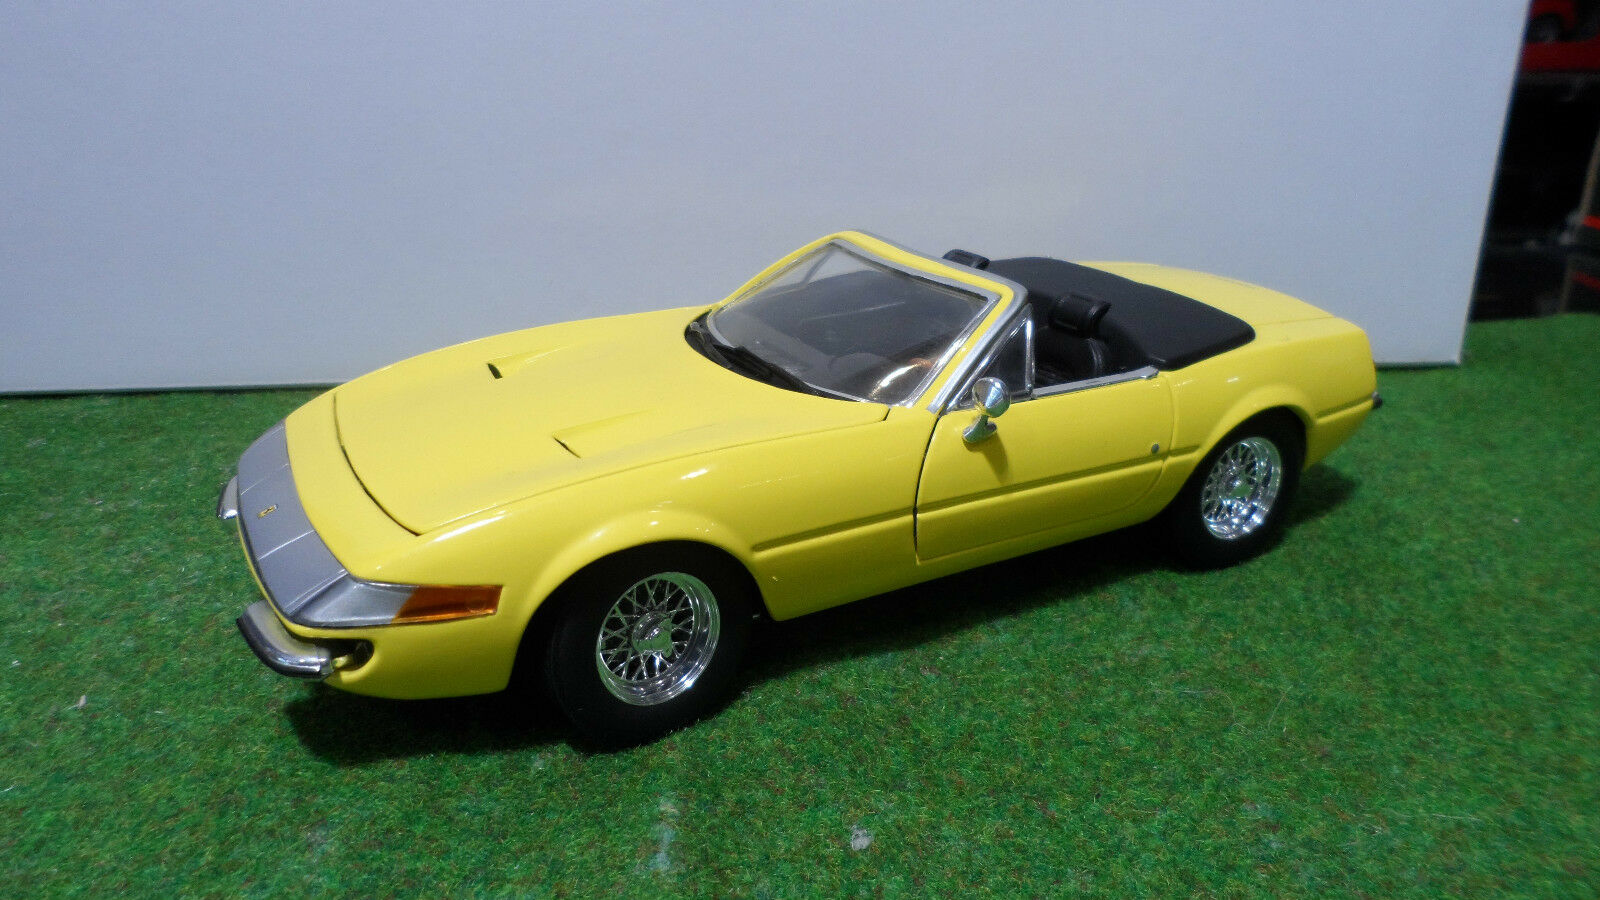 FERRARI 365 GTS 4 Daytona cabriolet yellow au 1 18 d HOT WHEELS voiture miniature